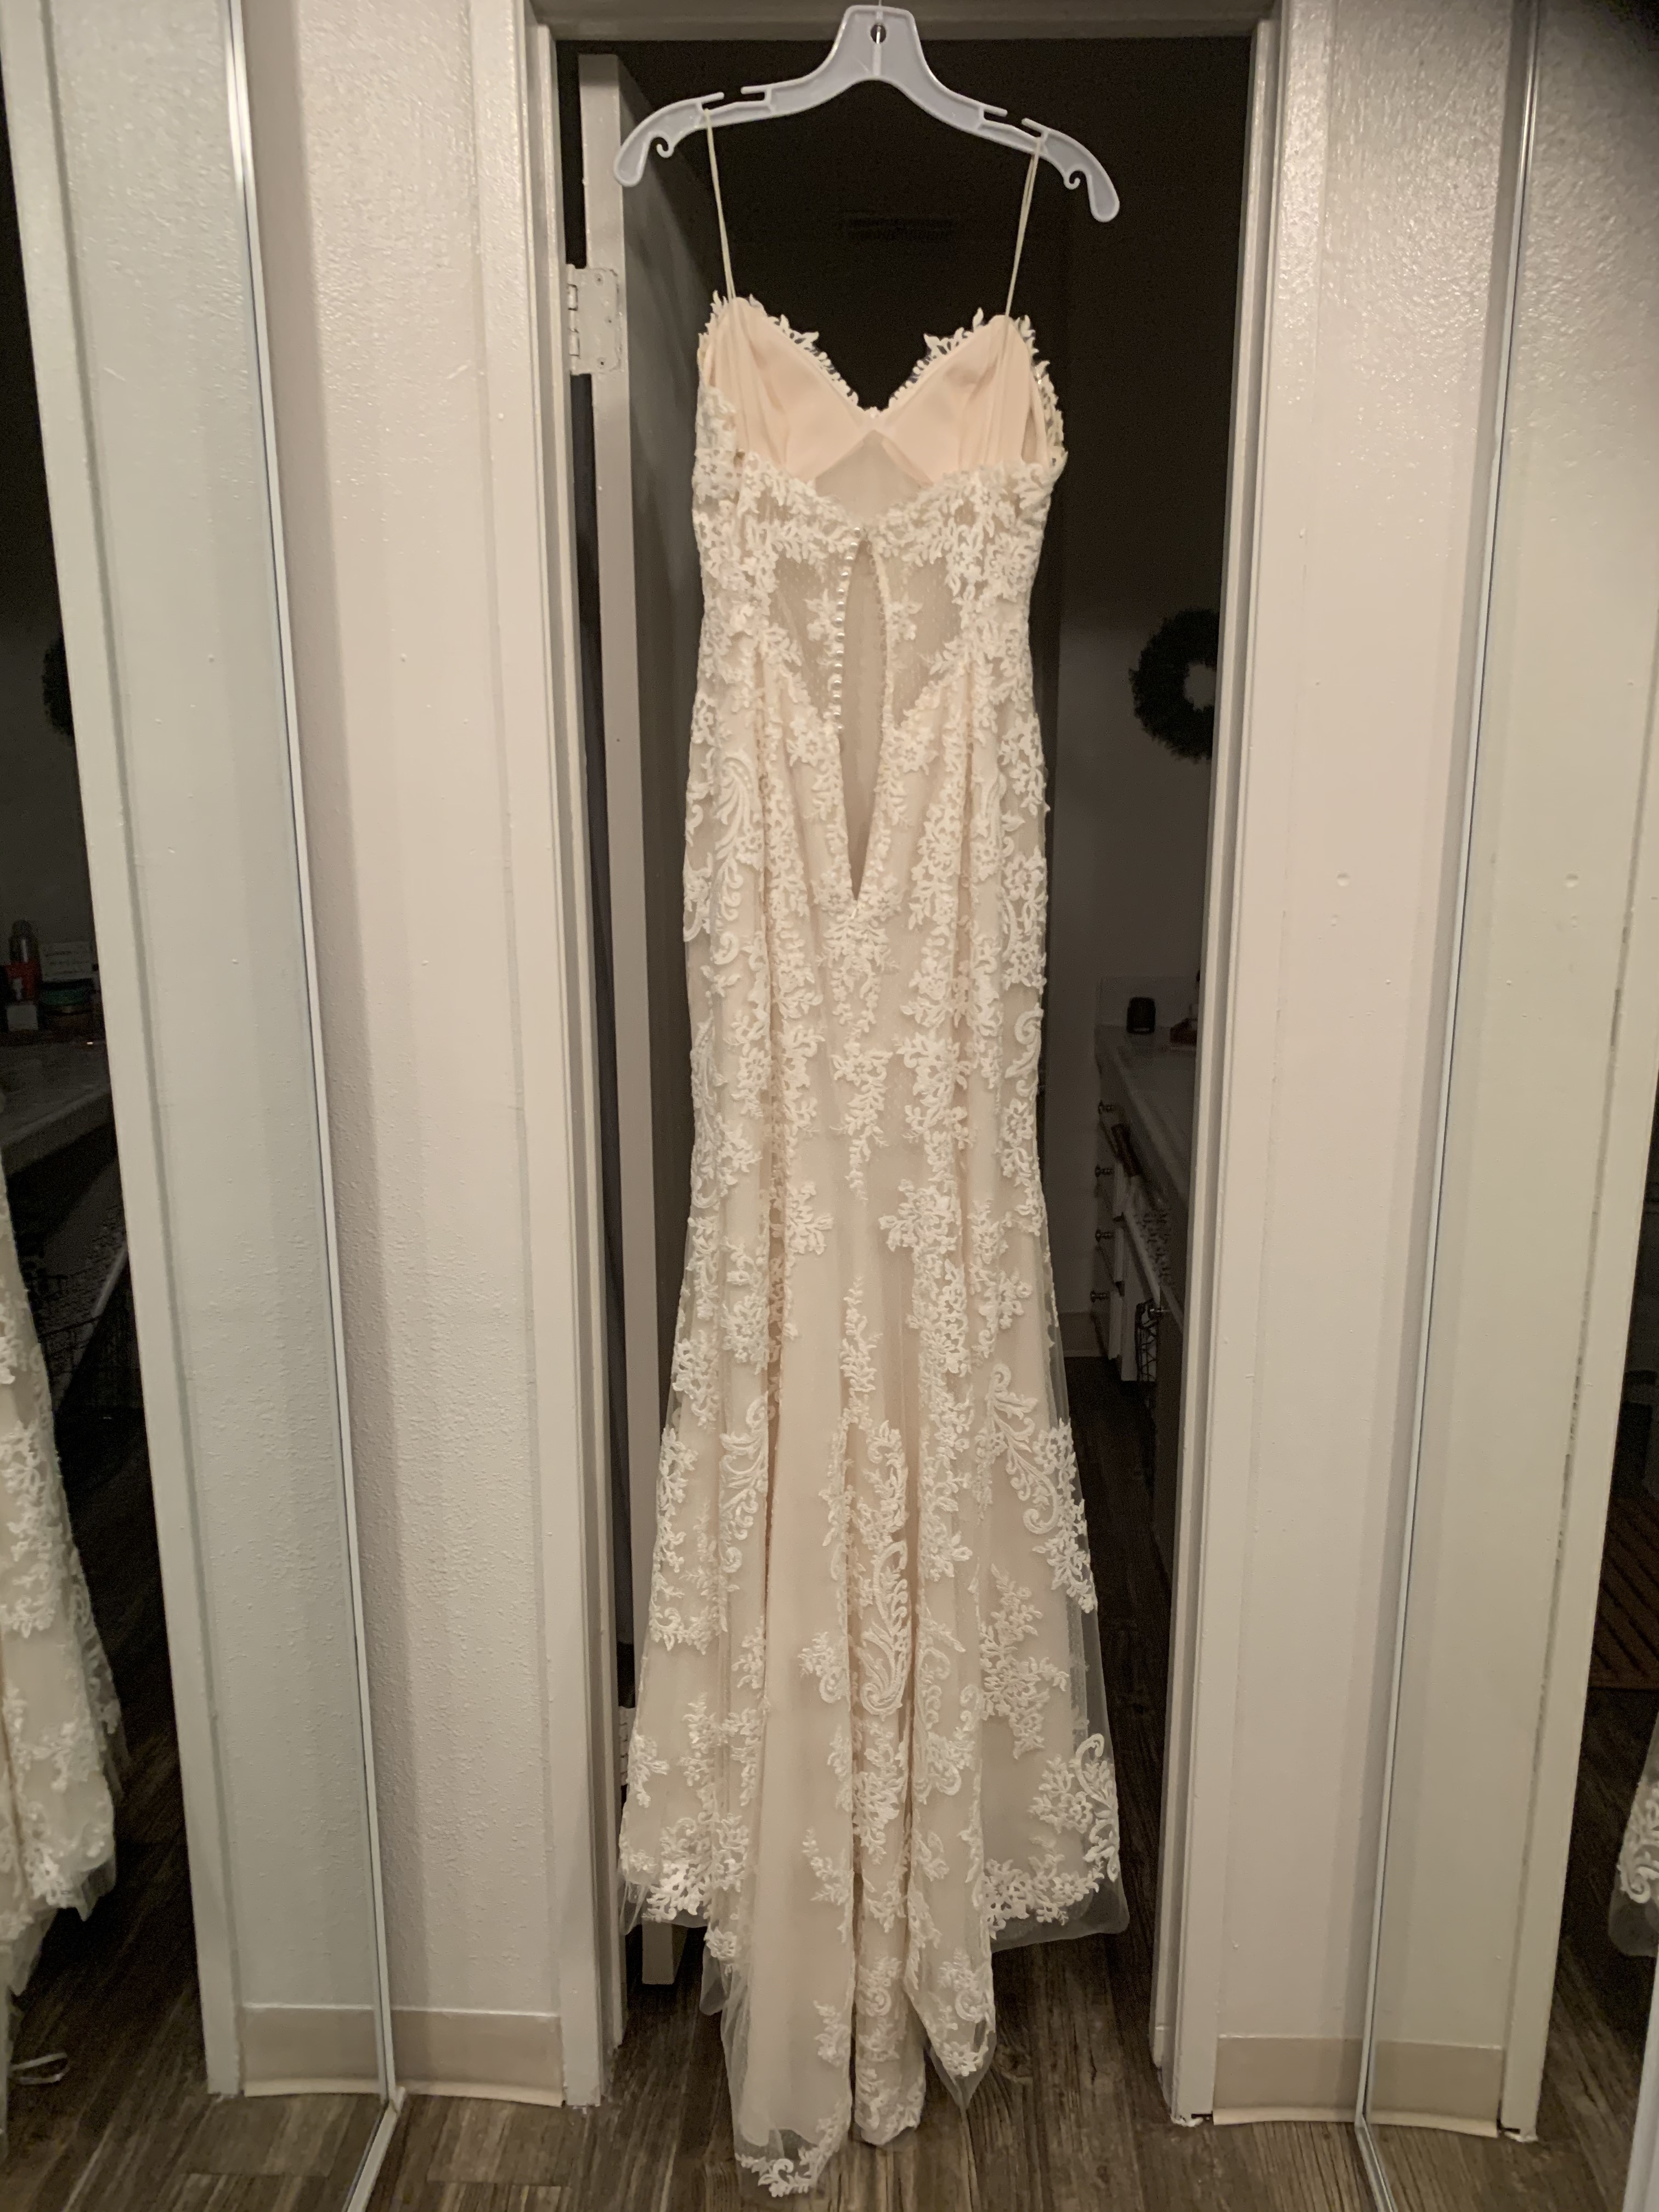 Maggie sottero - 5SR602 Ivory over nude size 6 - $900 - (40% OFF)